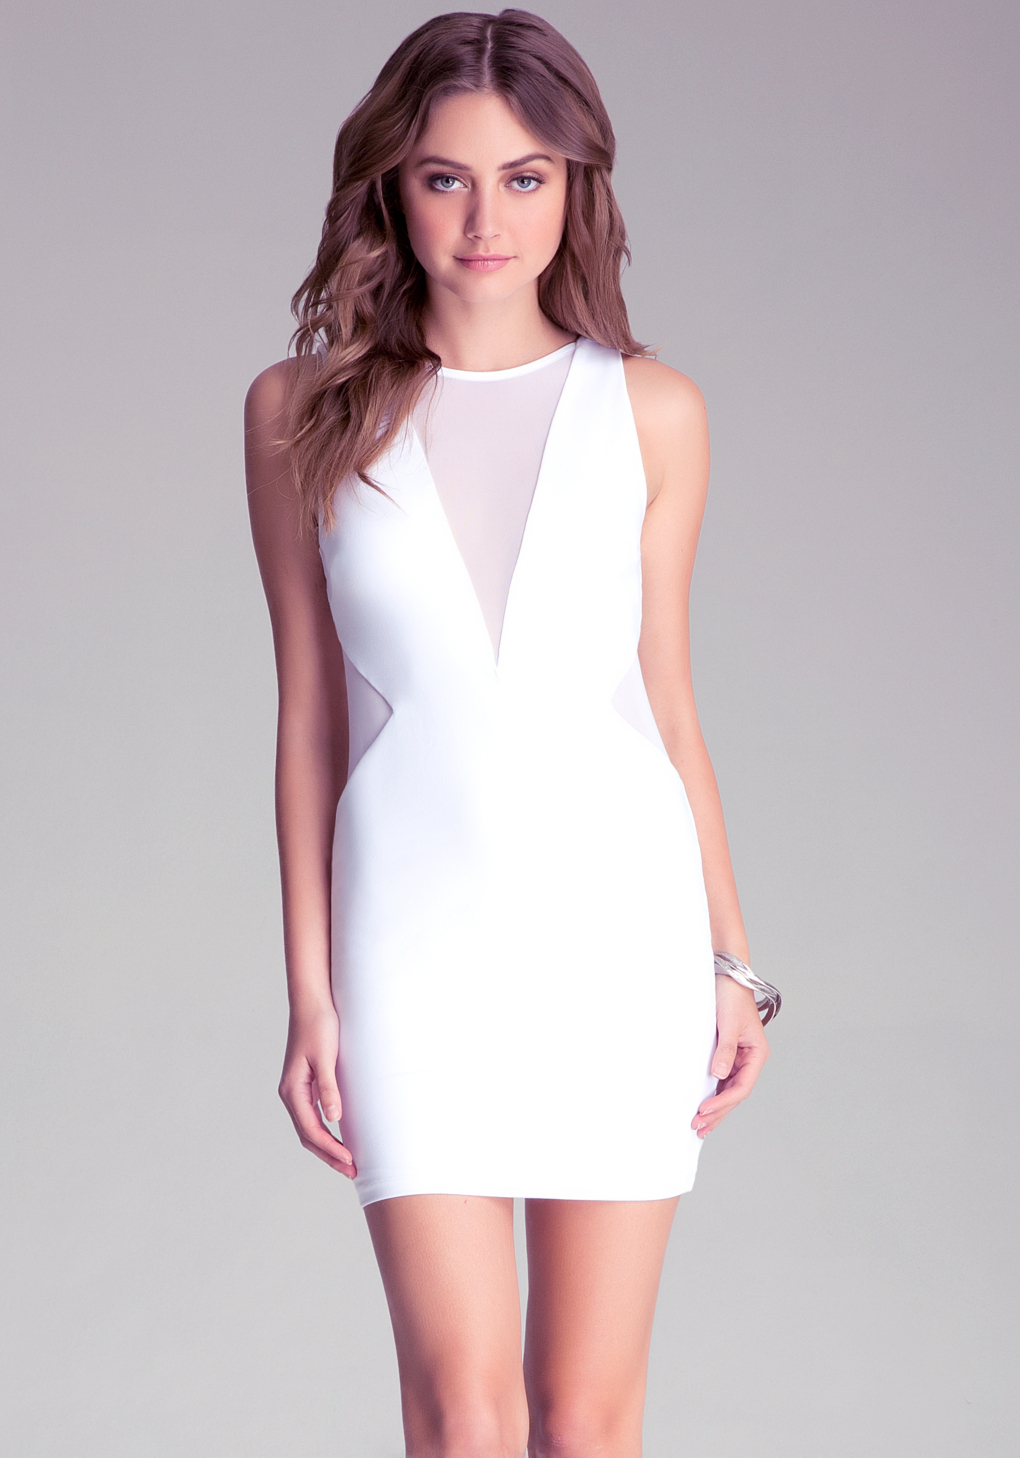 Option Contract - Mesh Inset Knit Dress, sexy white dress for a hot summer night out